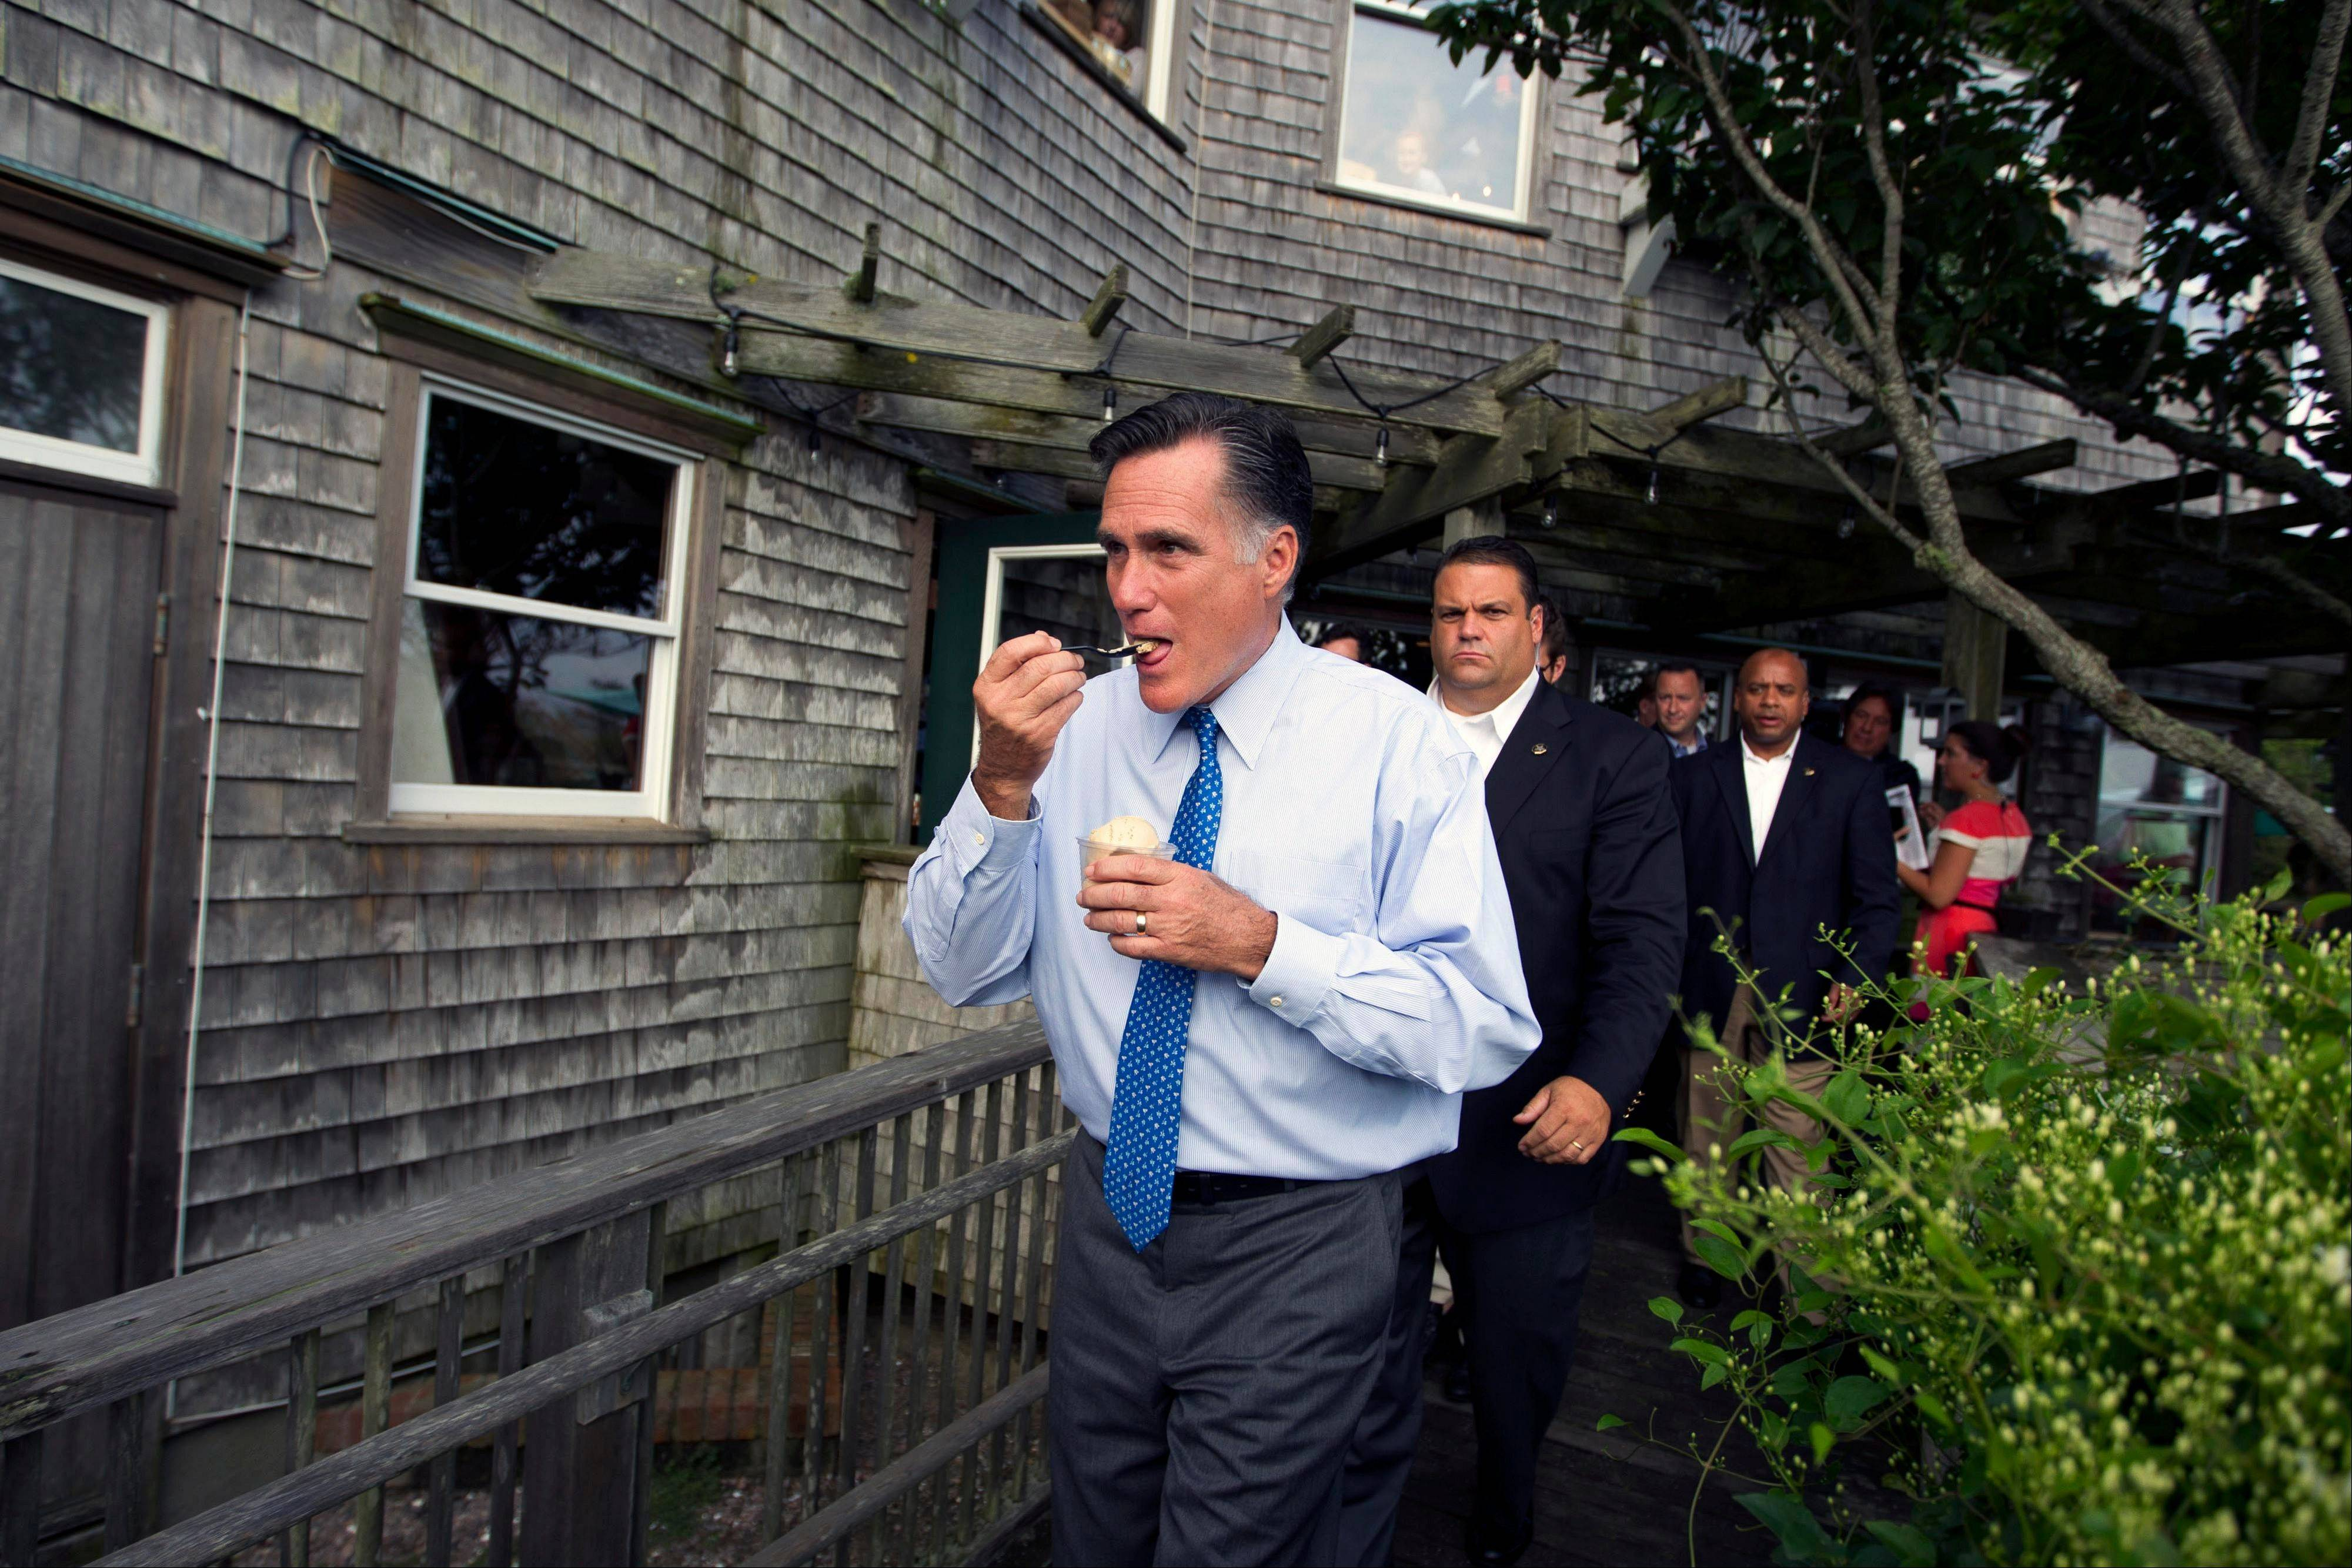 Republican presidential candidate Mitt Romney is ready to face New Hampshire voters and answer their questions, especially about the Republican plan for Medicare that has left some seniors skittish.